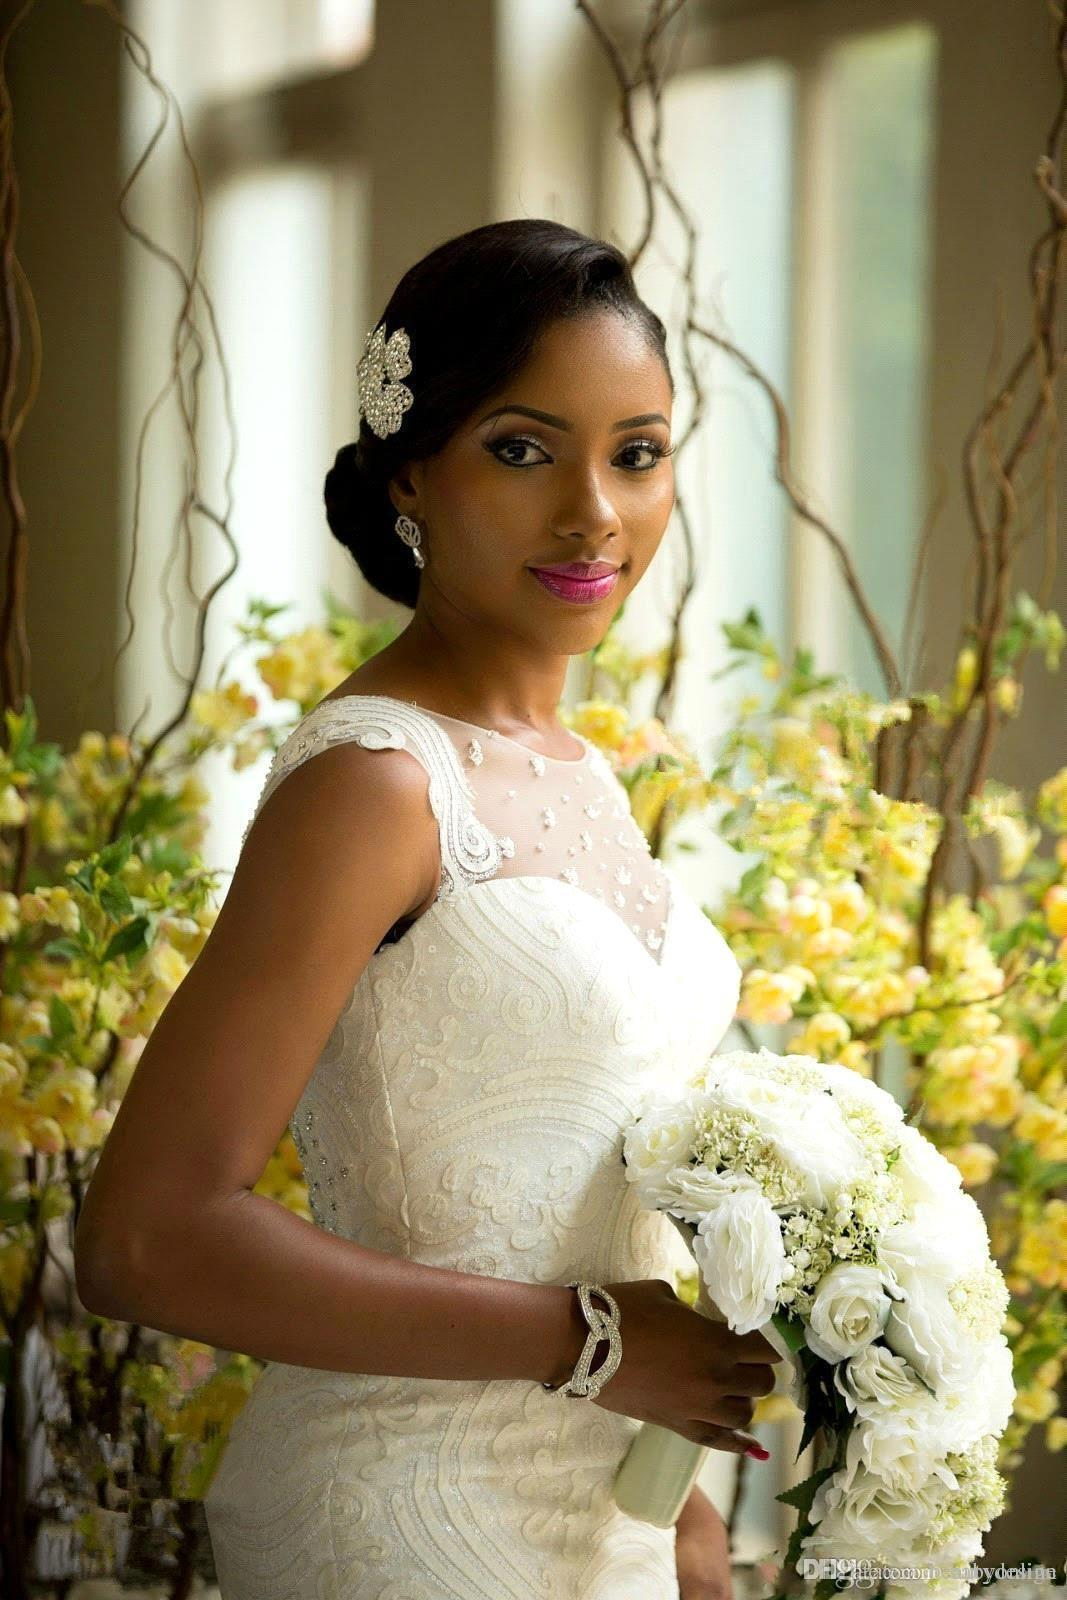 2017 Garden Wedding Dresses Mermaid Illusion Neckline Bridal Gowns Nigerian Lace Covered Button Back Long African Aso Ebi Wedding Gown